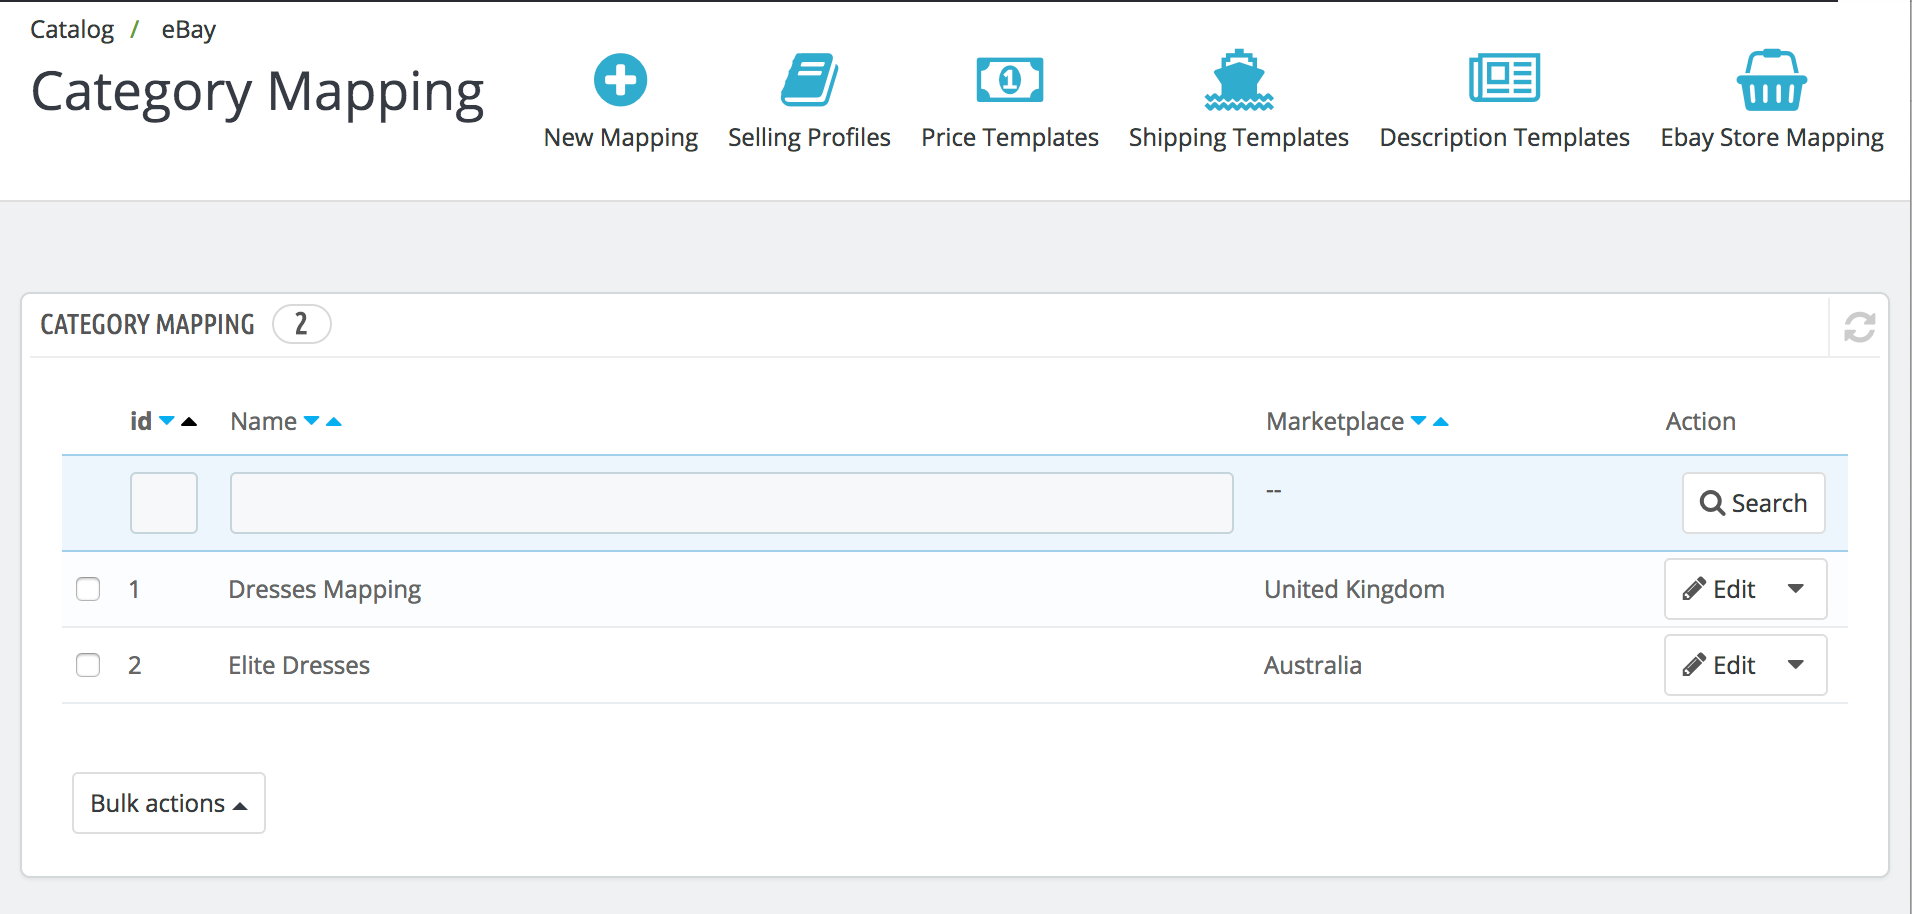 PrestaShop ebay module — Category Mapping